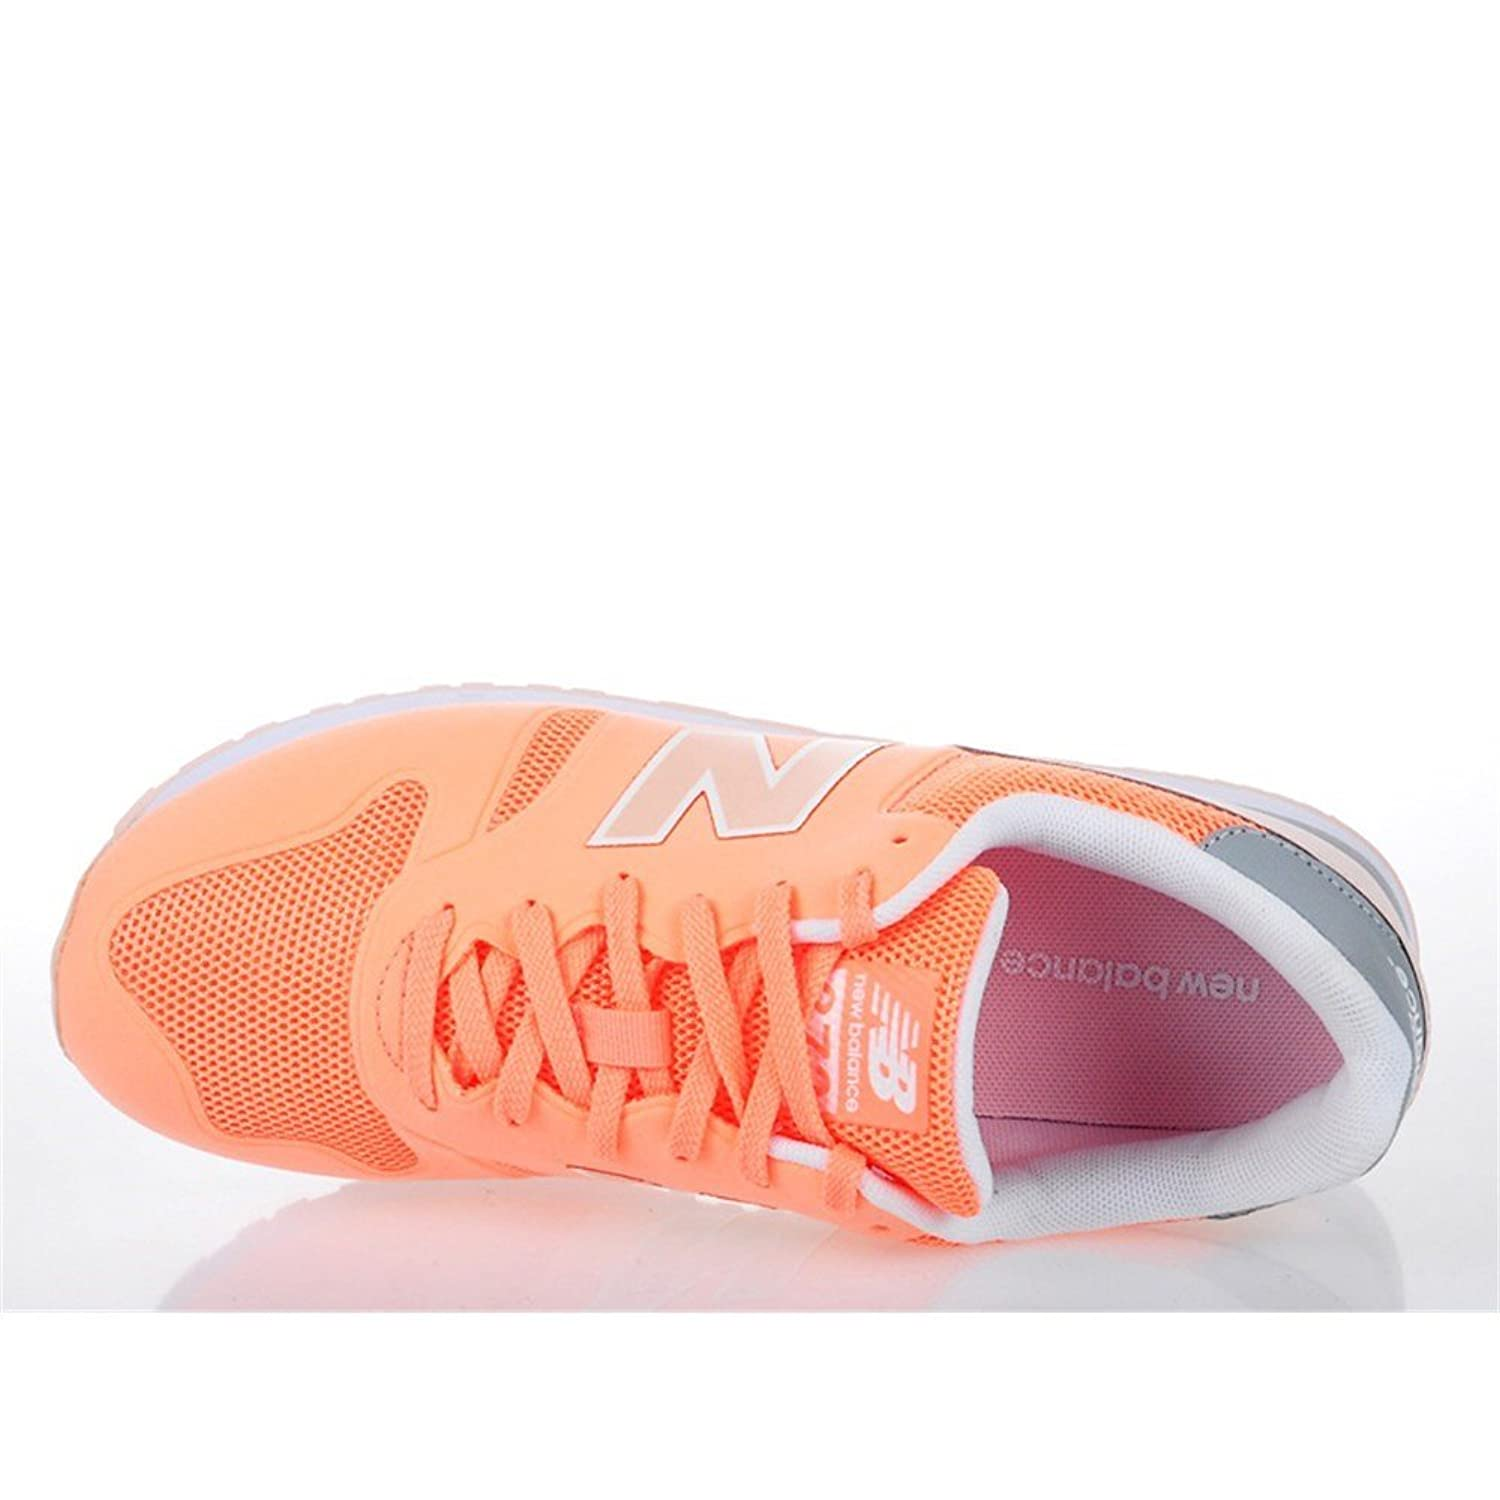 Grisorange Kd373cry Couleur Pointure New 285 Balance wtxFAWnq5v